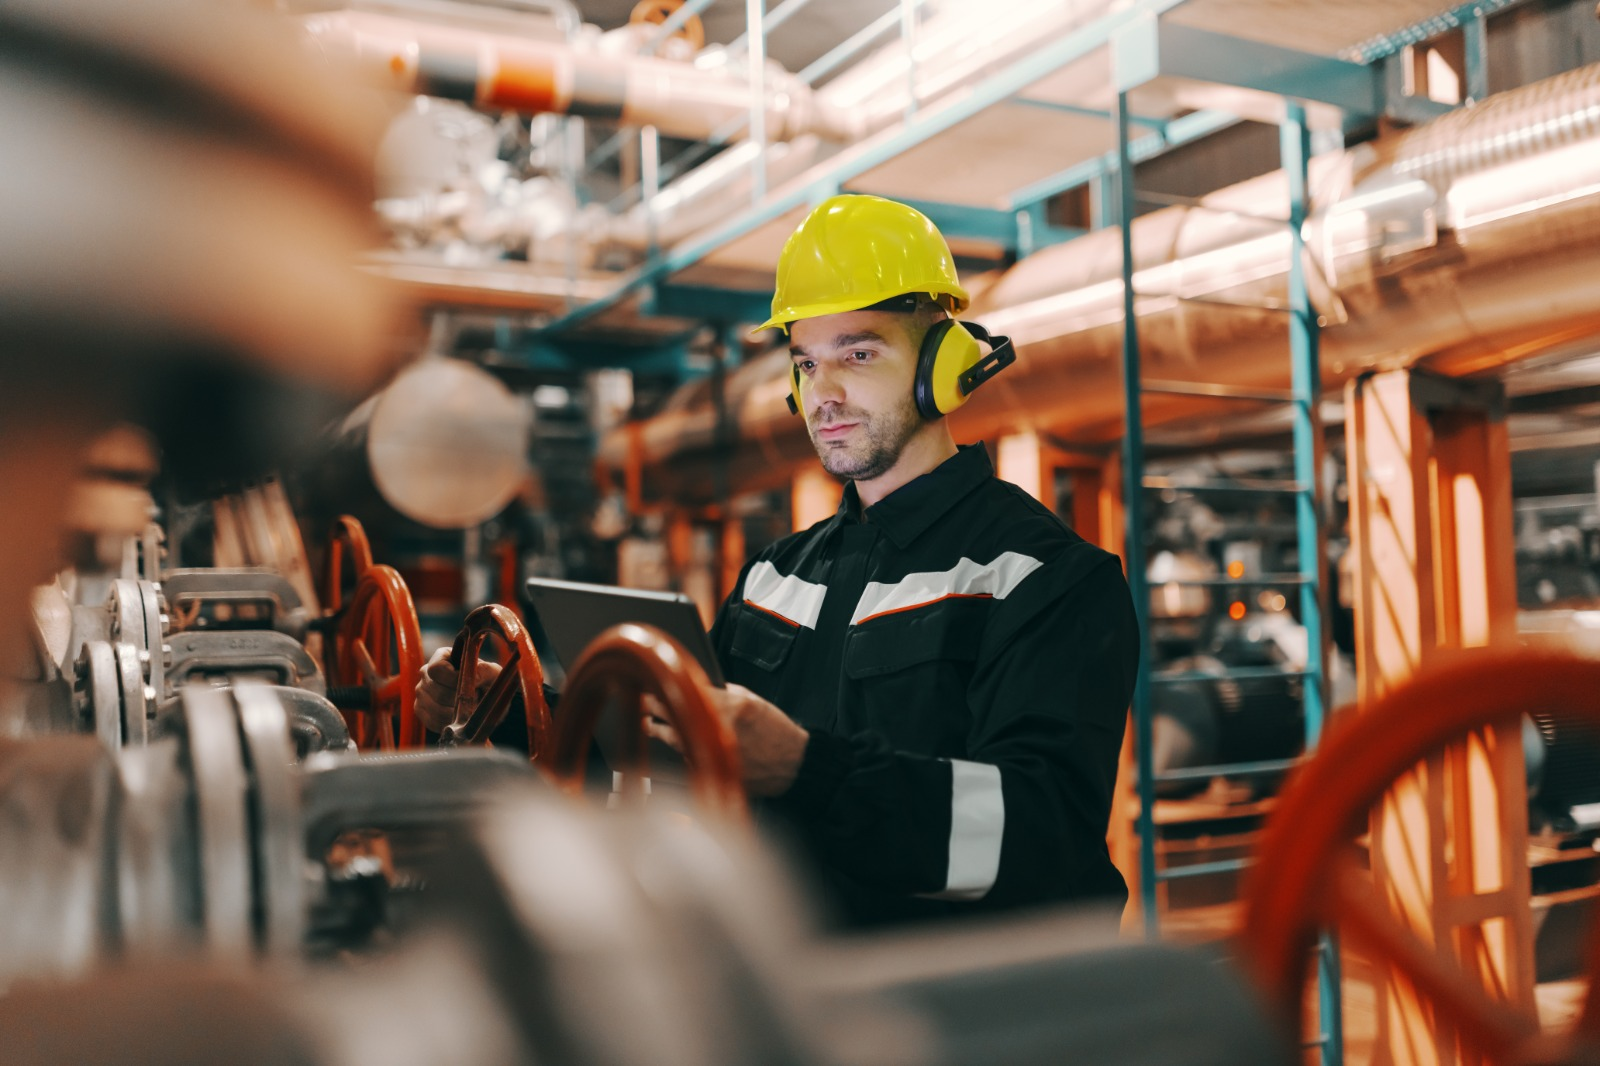 predictive maintenance provides increased productivity throughout the plant.